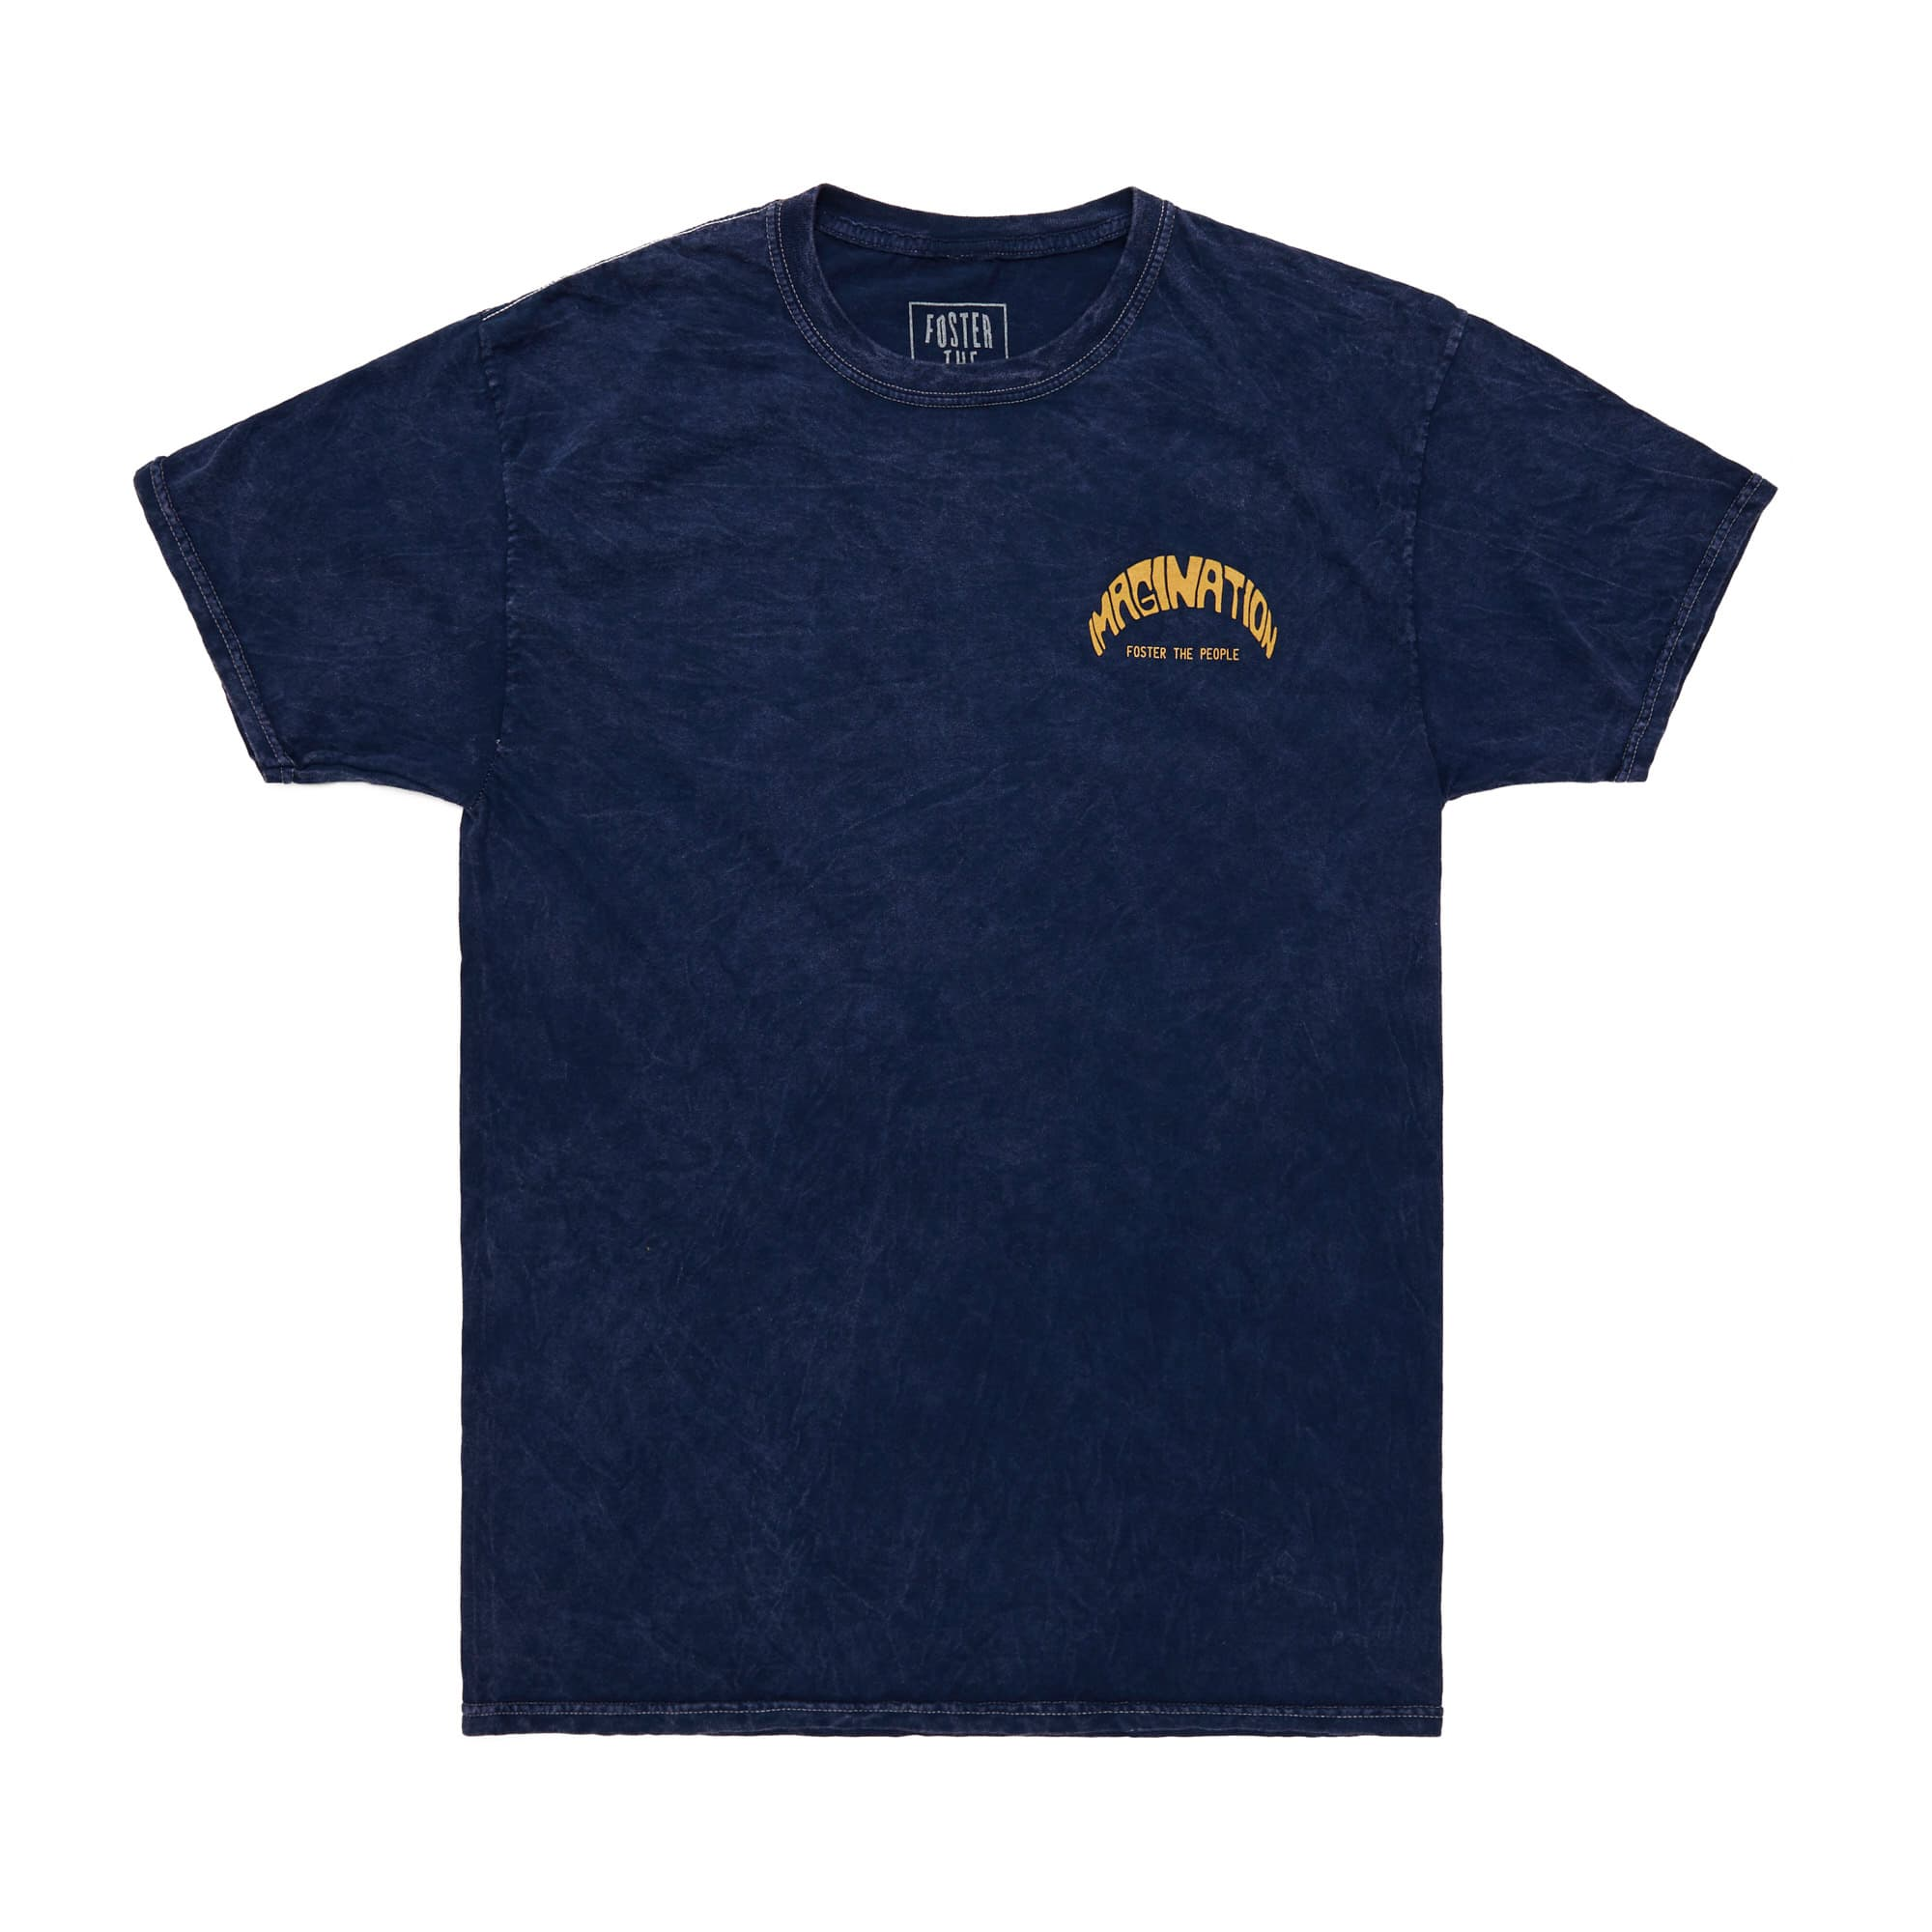 'Imagination' Mineral Wash Tee